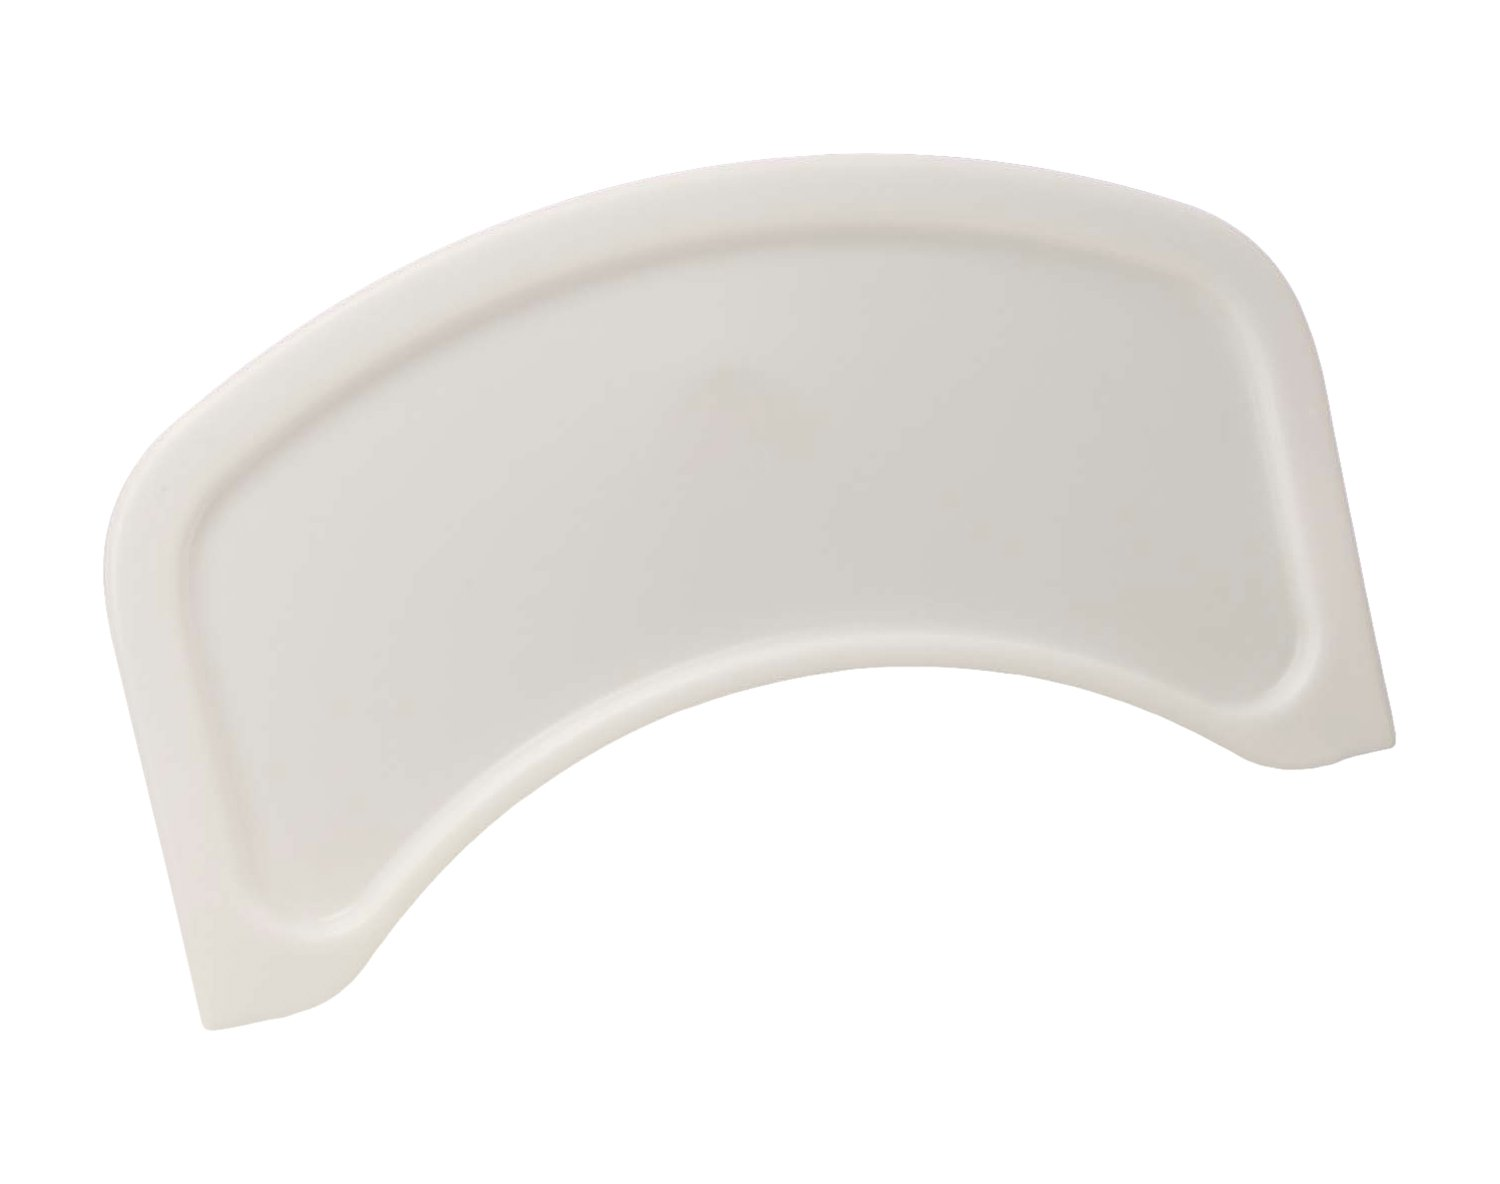 Keekaroo Height Right Tray Extra Plastic Cover, White